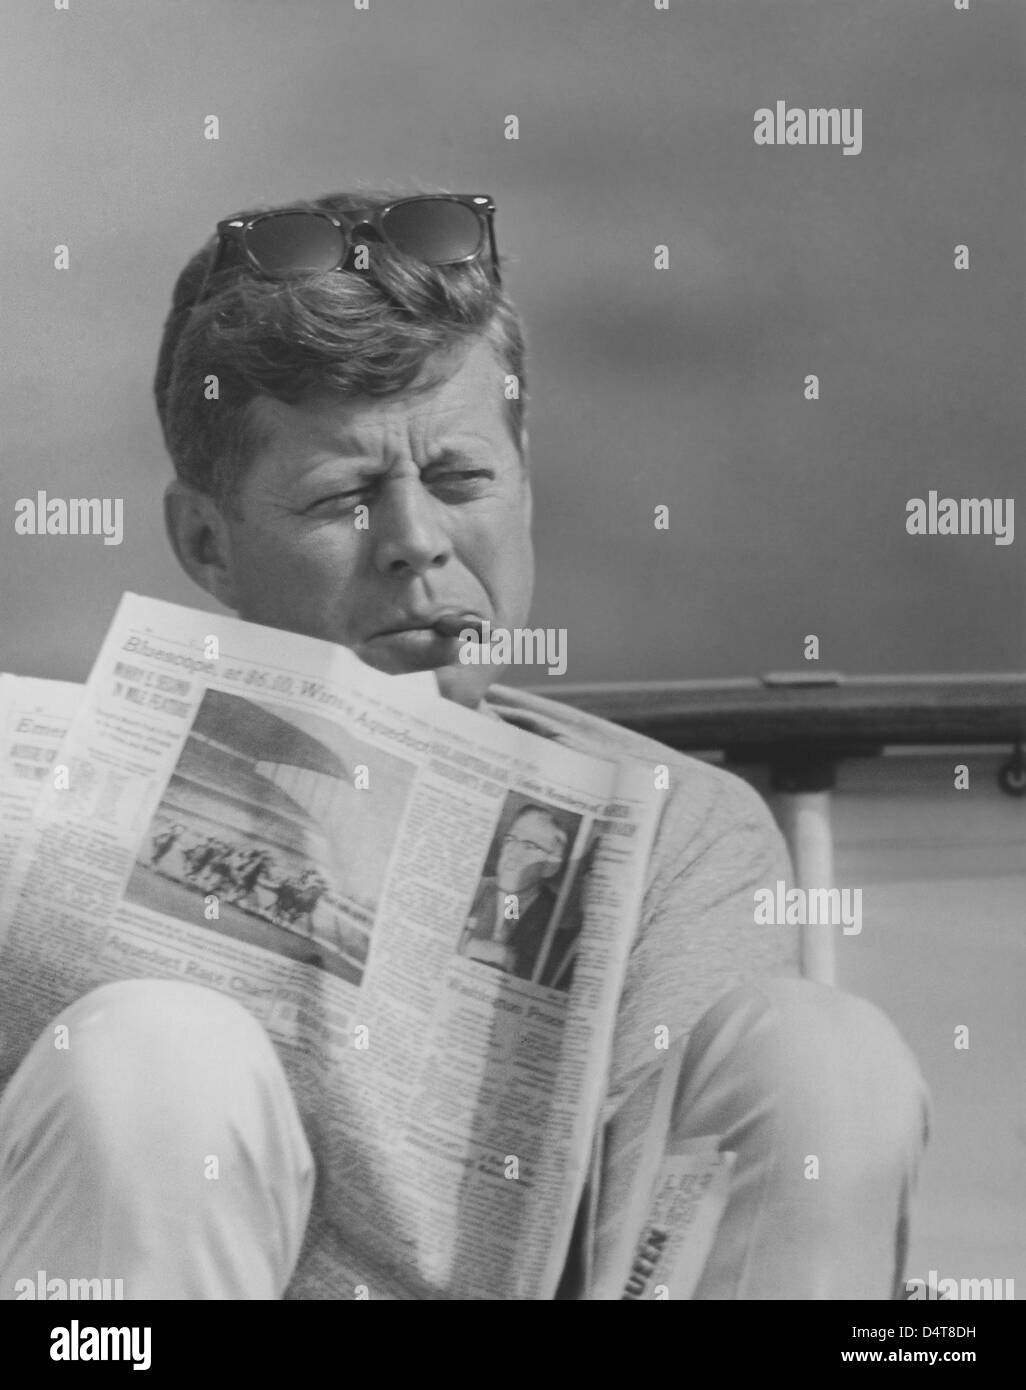 Digitally restored vintage photo of President John F. Kennedy relaxing outside, smoking a cigar and reading the - Stock Image